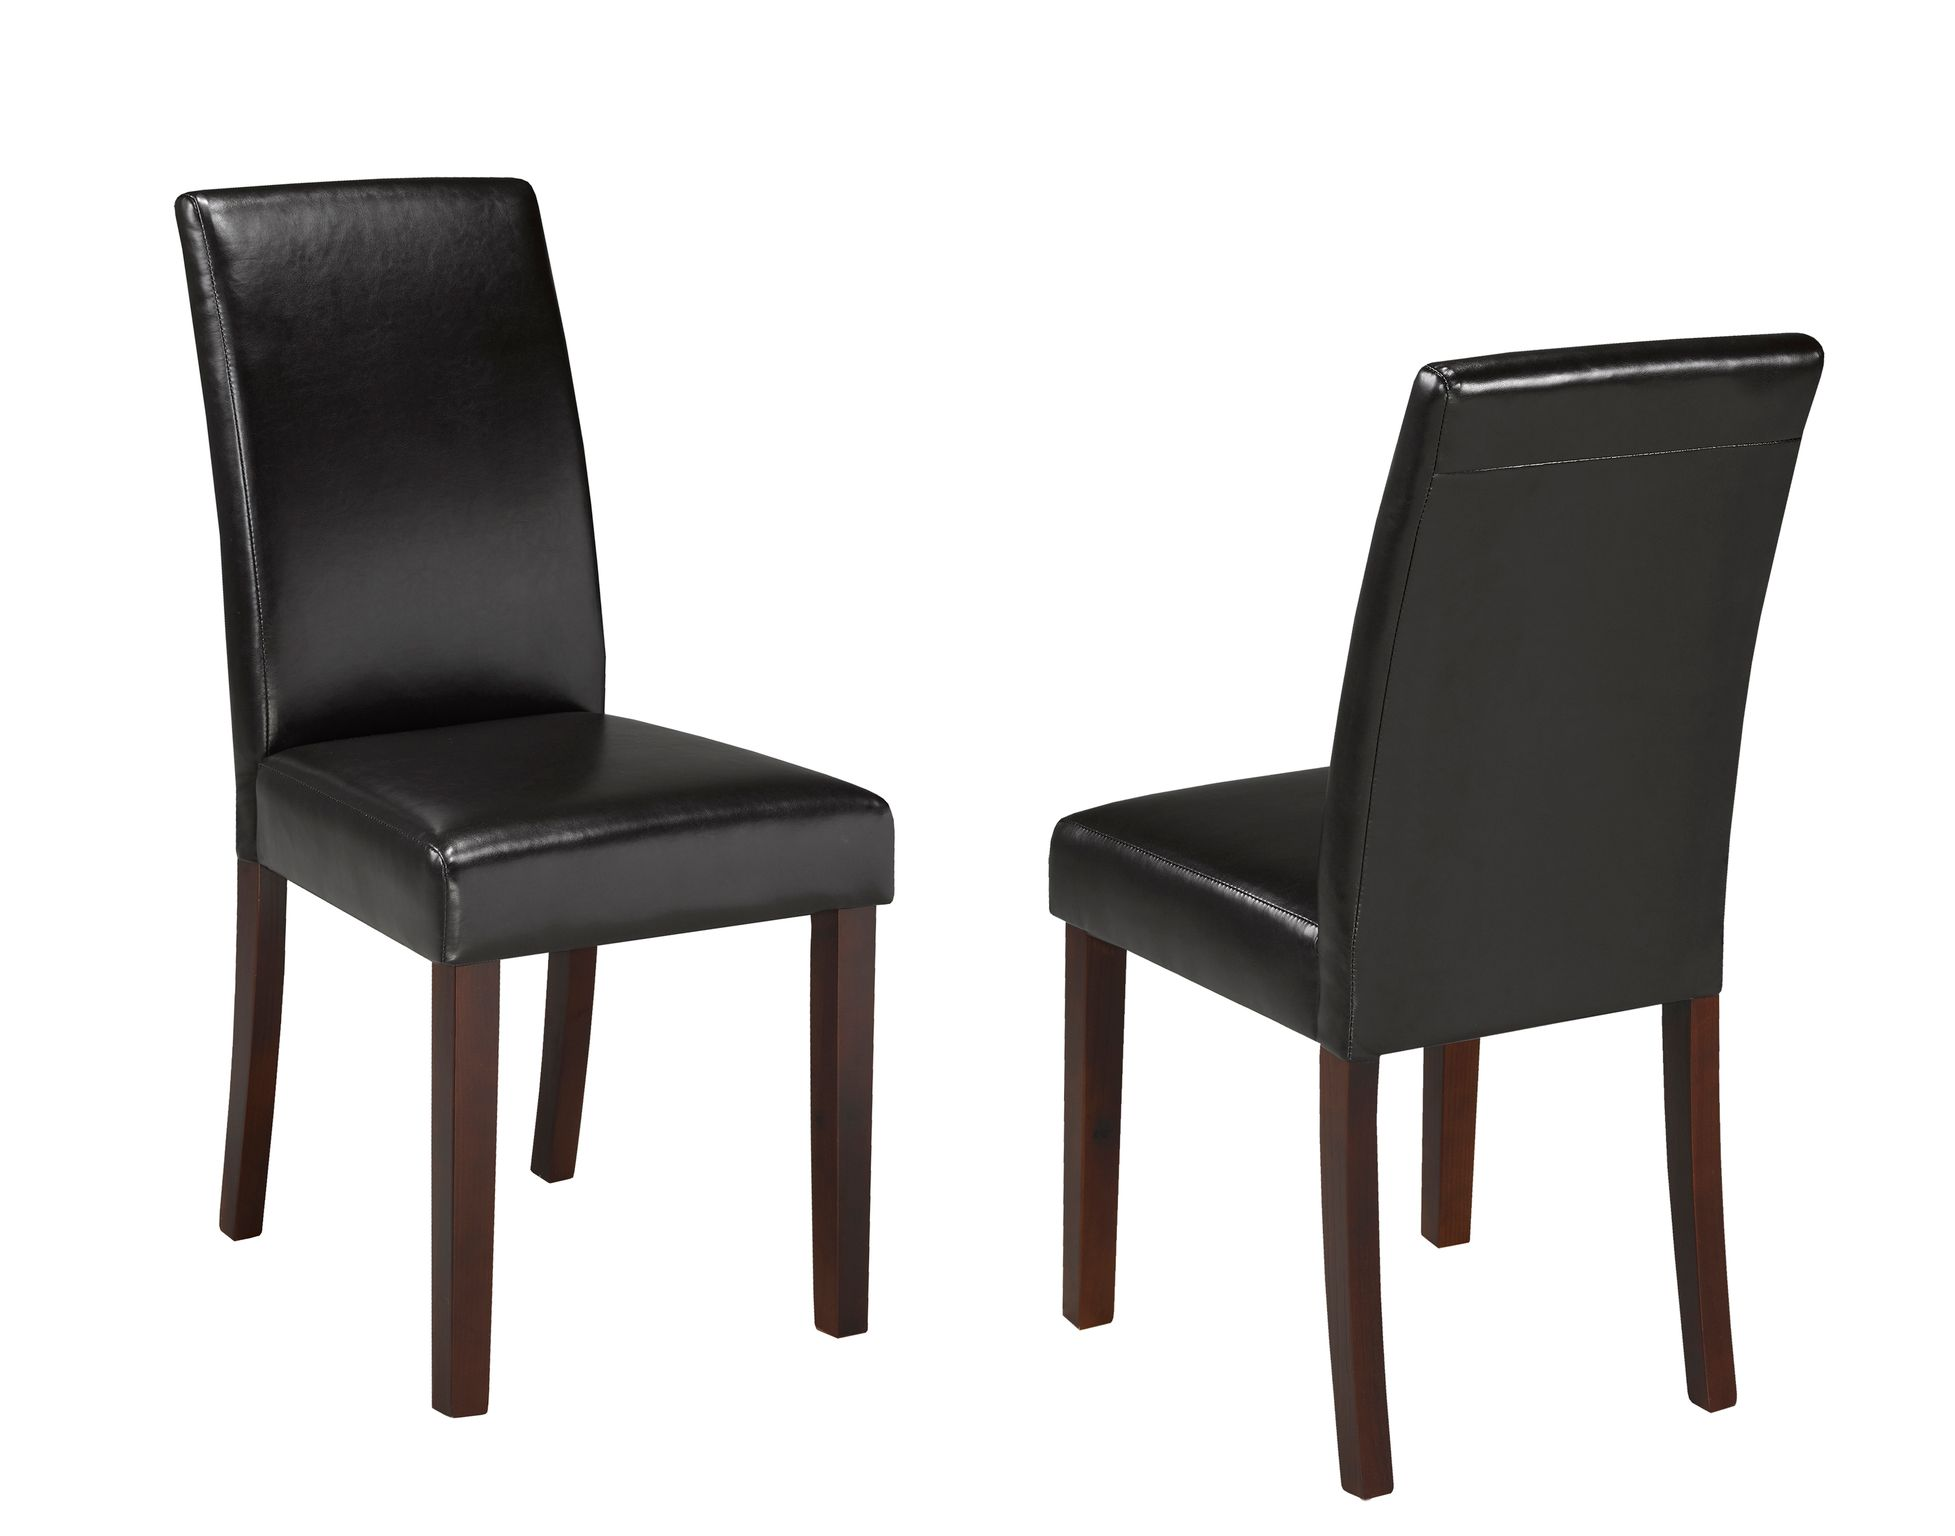 PU CHAIR BROWN (DINING CHAIR SET OF 2 )